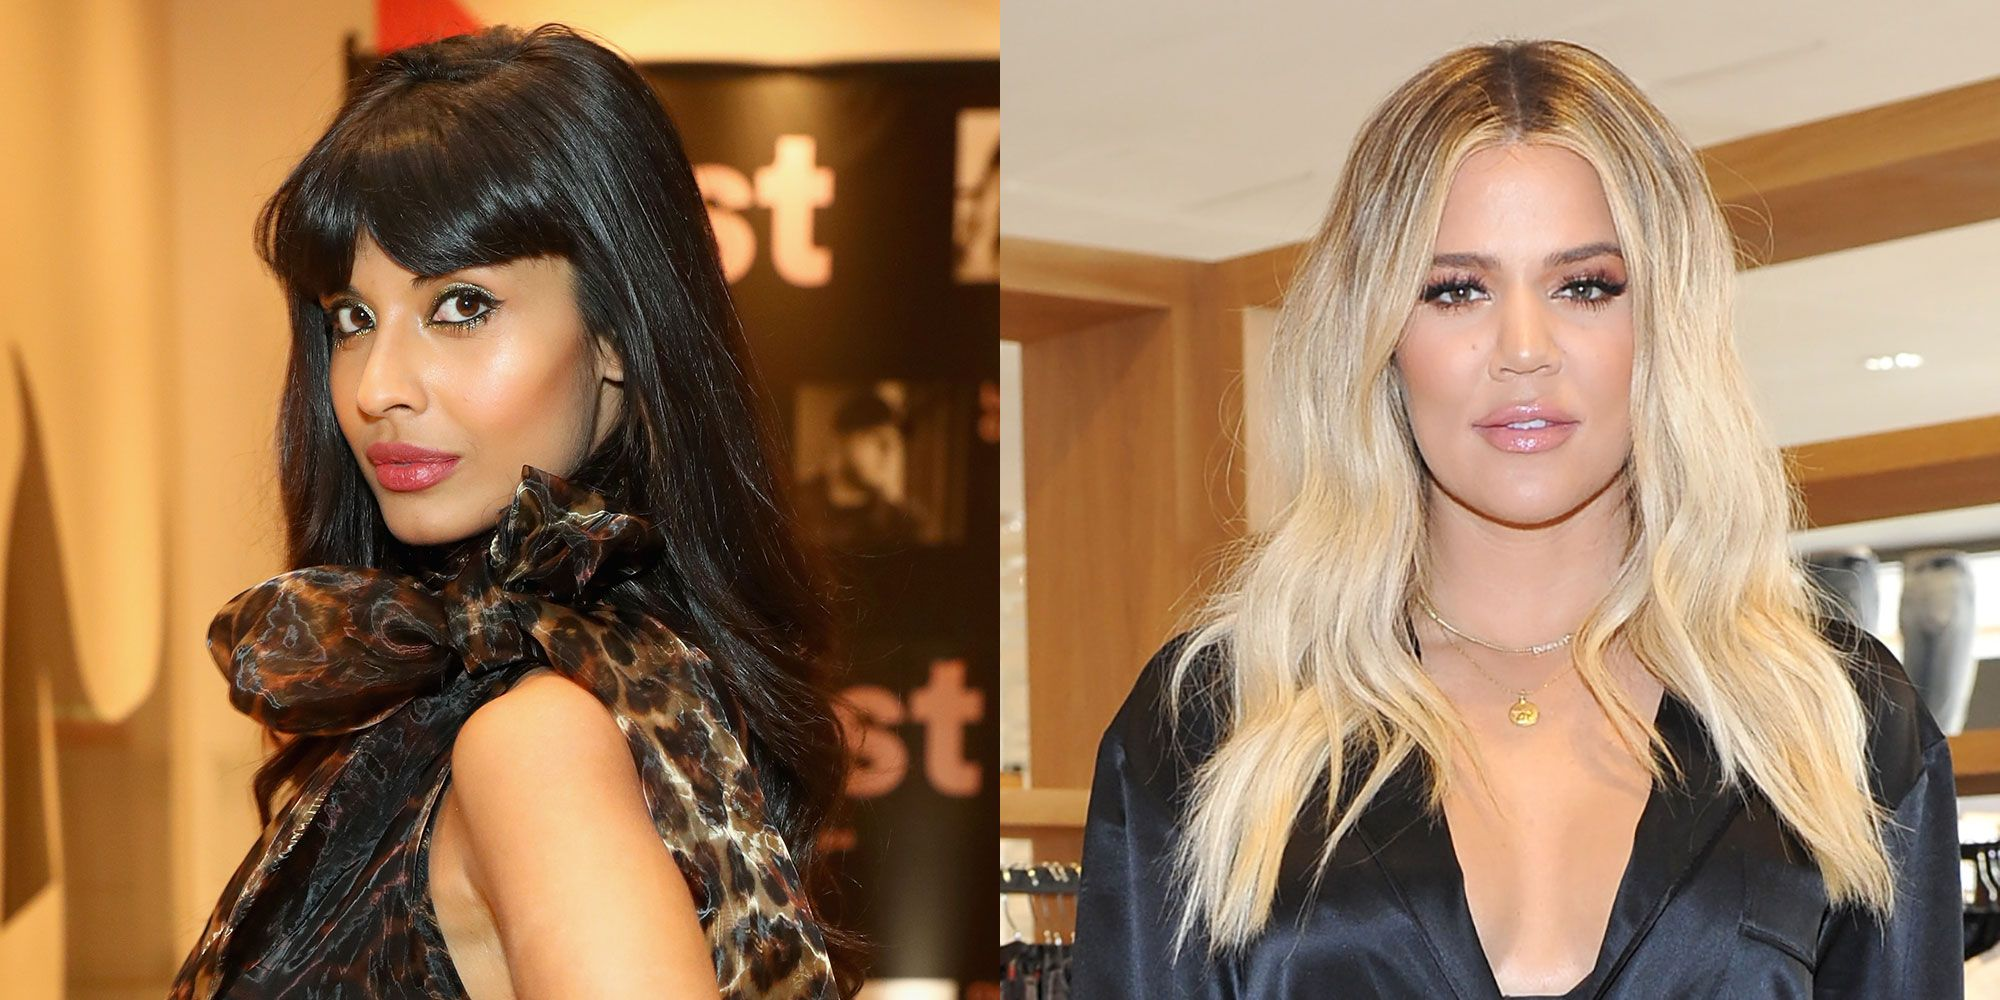 Jameela Jamil and Khloe Kardashian